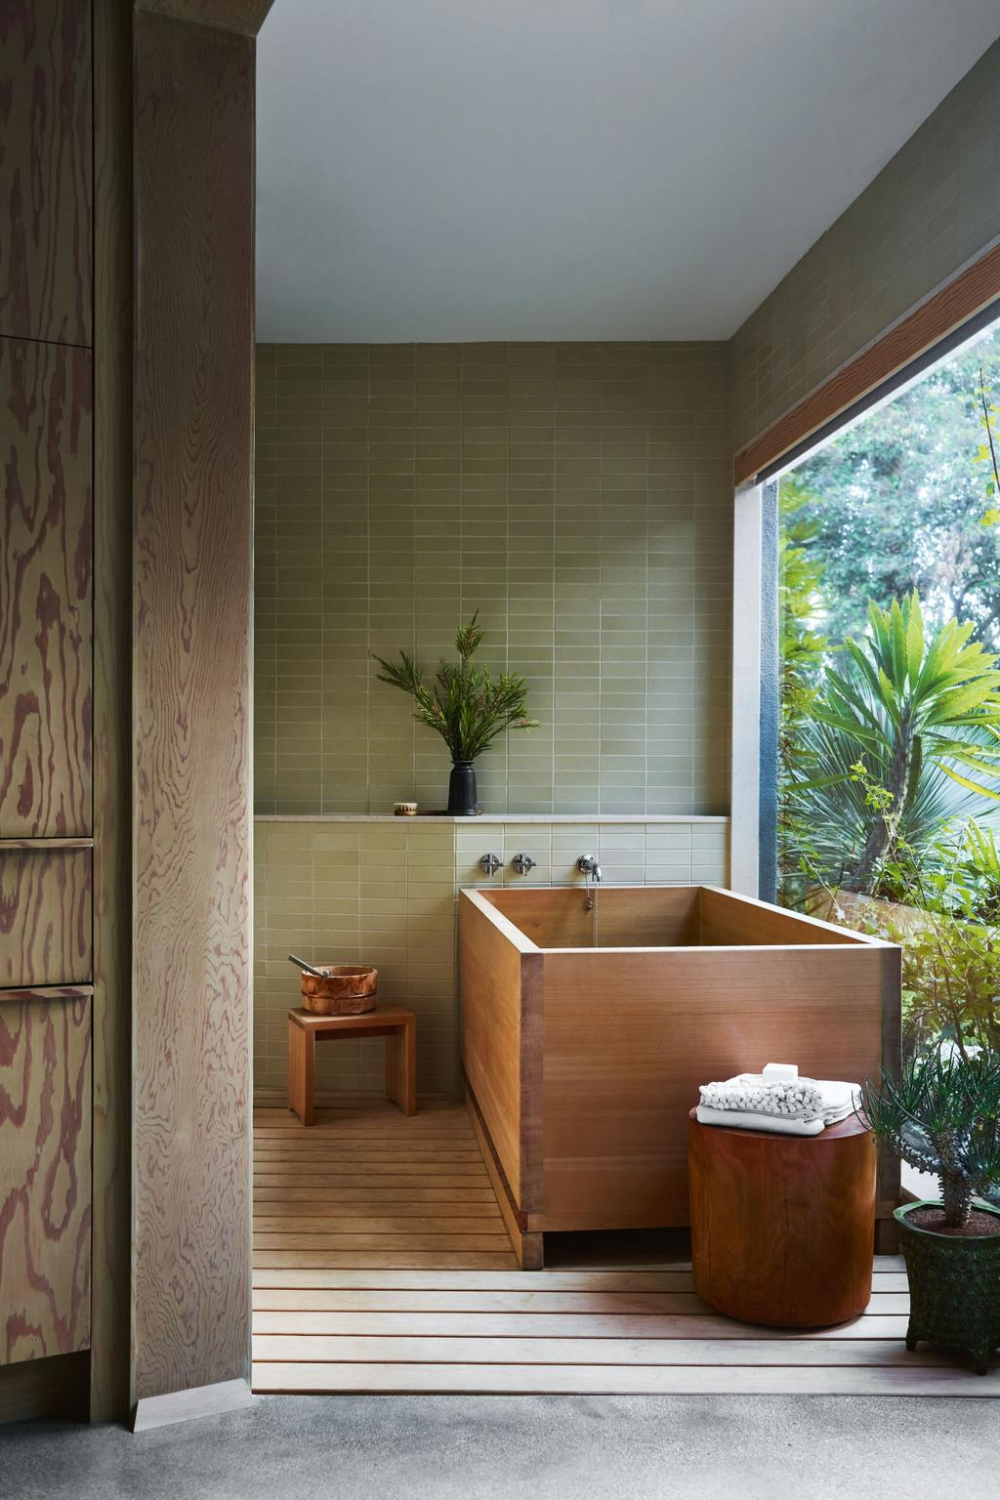 These Were The 10 Most Popular Bathrooms On Vogue Living For 2018 Vogue Australia In 2020 Japanese Bathroom Design Small Space Bathroom Design Japanese Bathroom